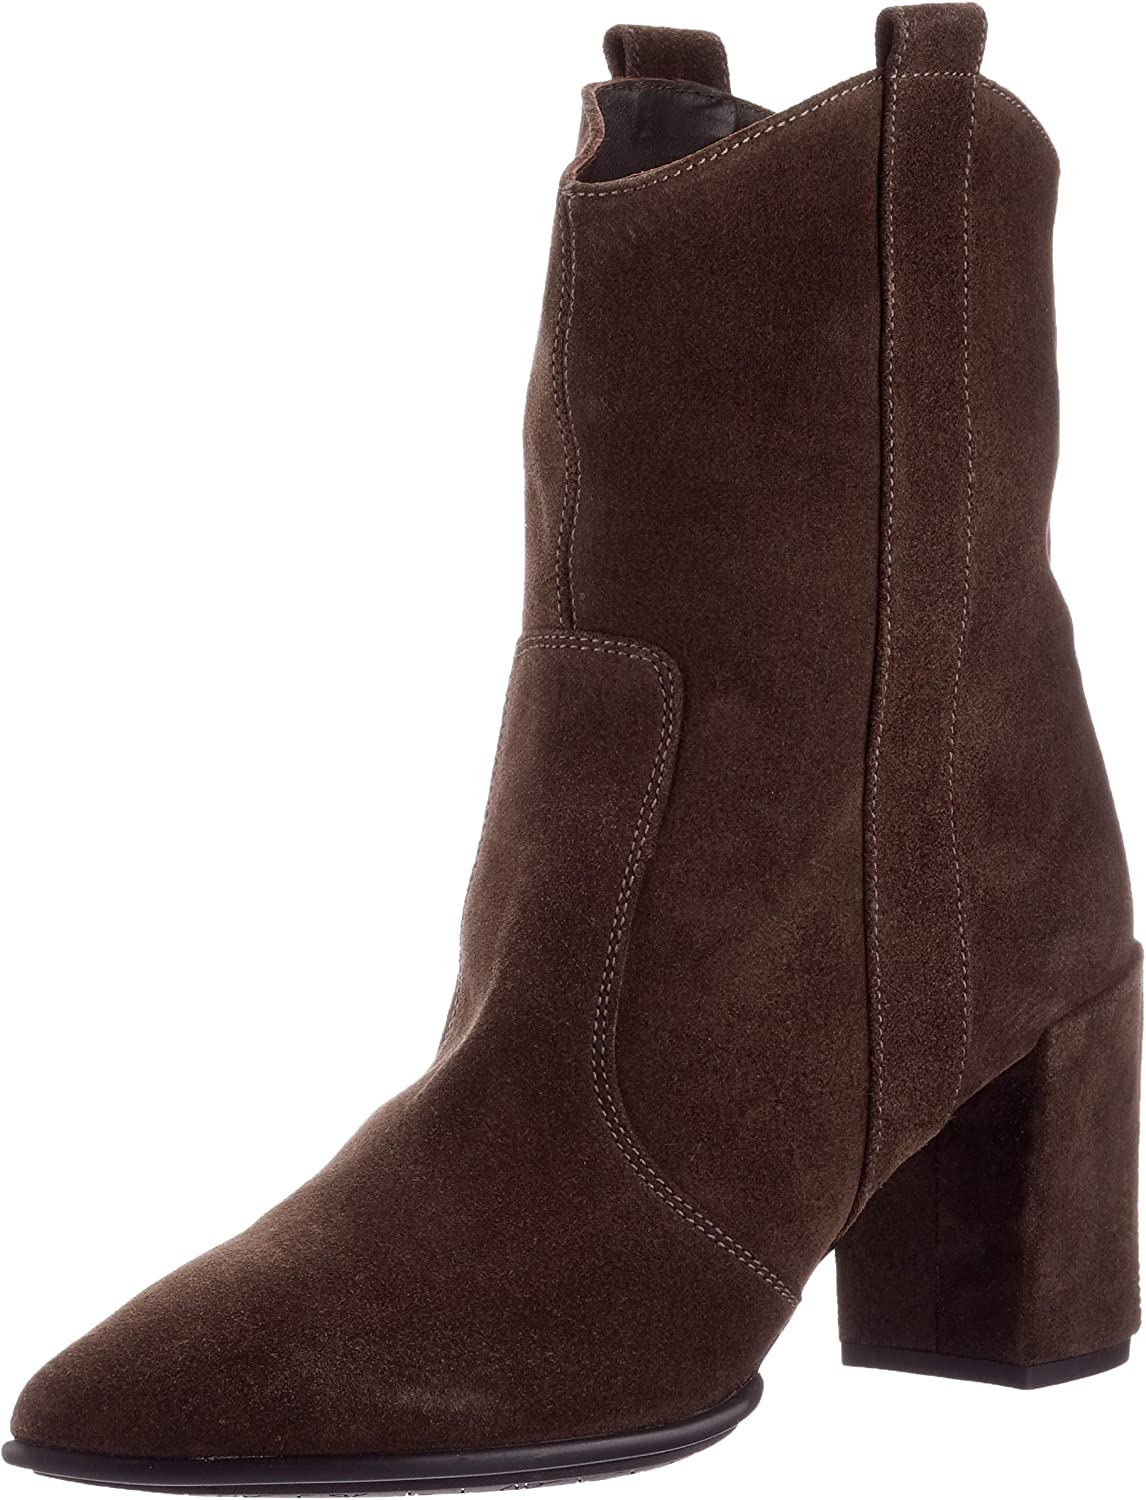 Unisa NEW before selling Women's Bargain sale Cowboy Boot Fashion